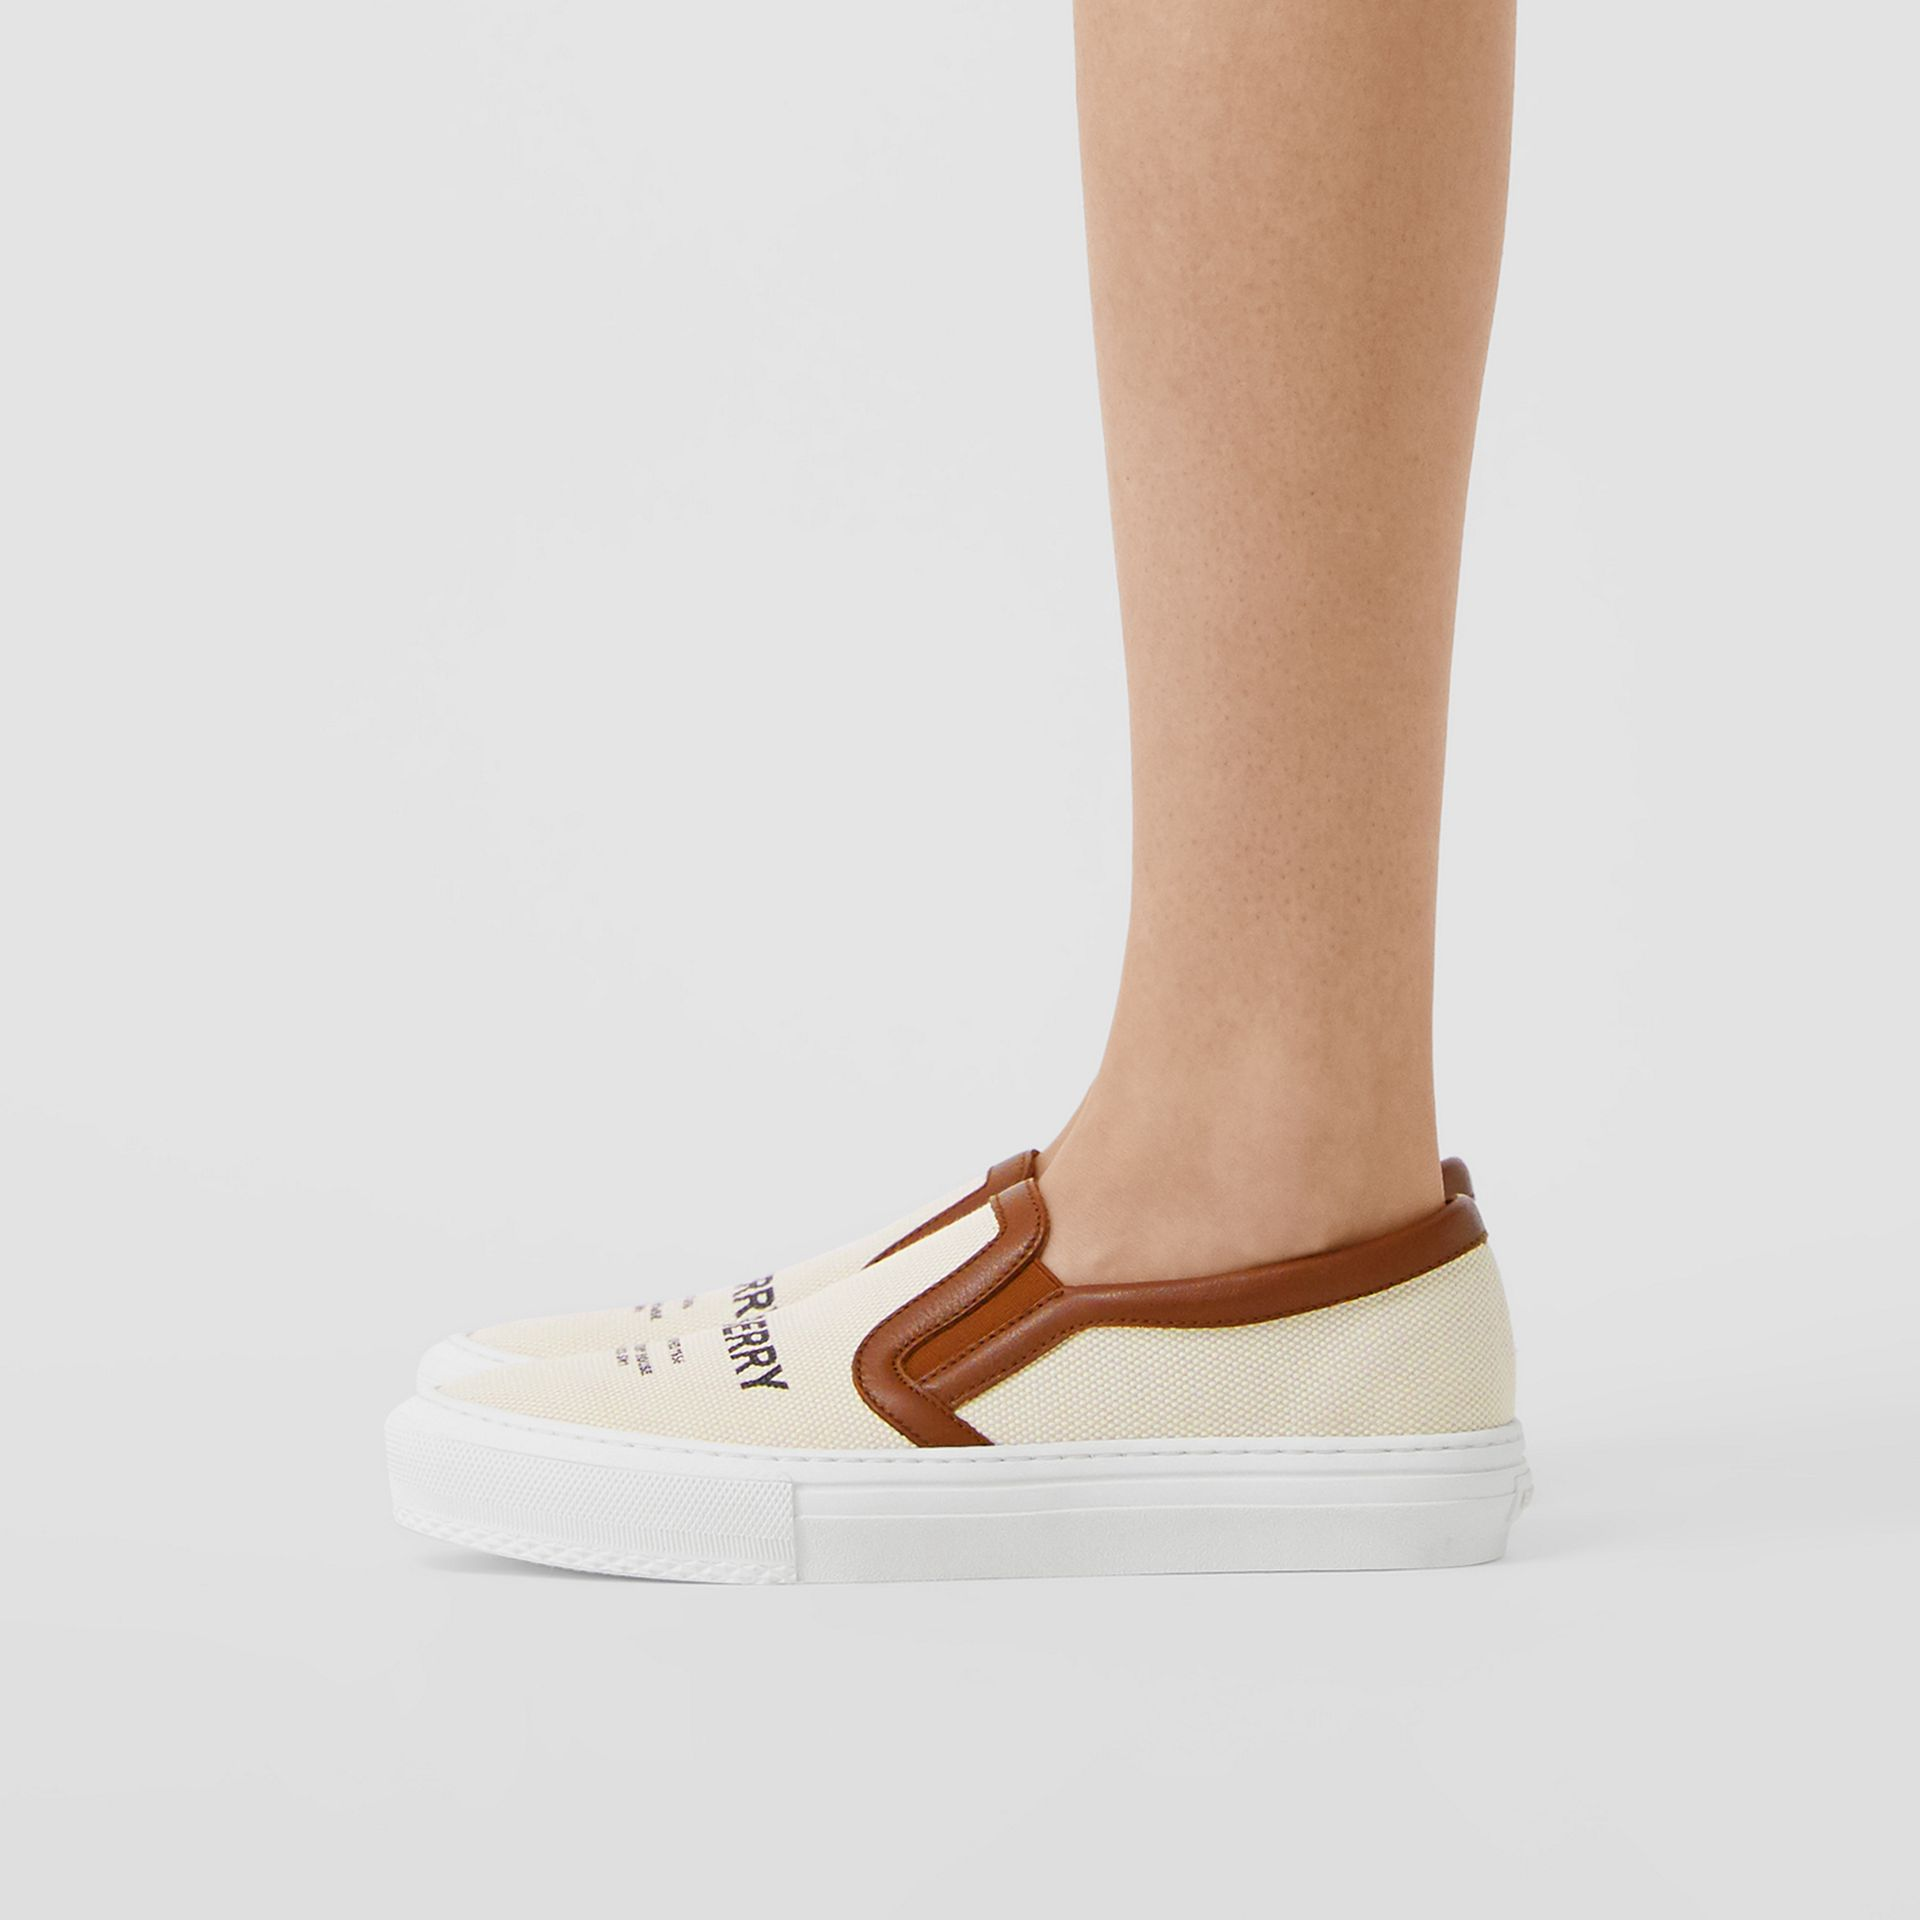 Horseferry Print Cotton and Leather Slip-on Sneakers in Malt Brown - Women | Burberry - gallery image 2